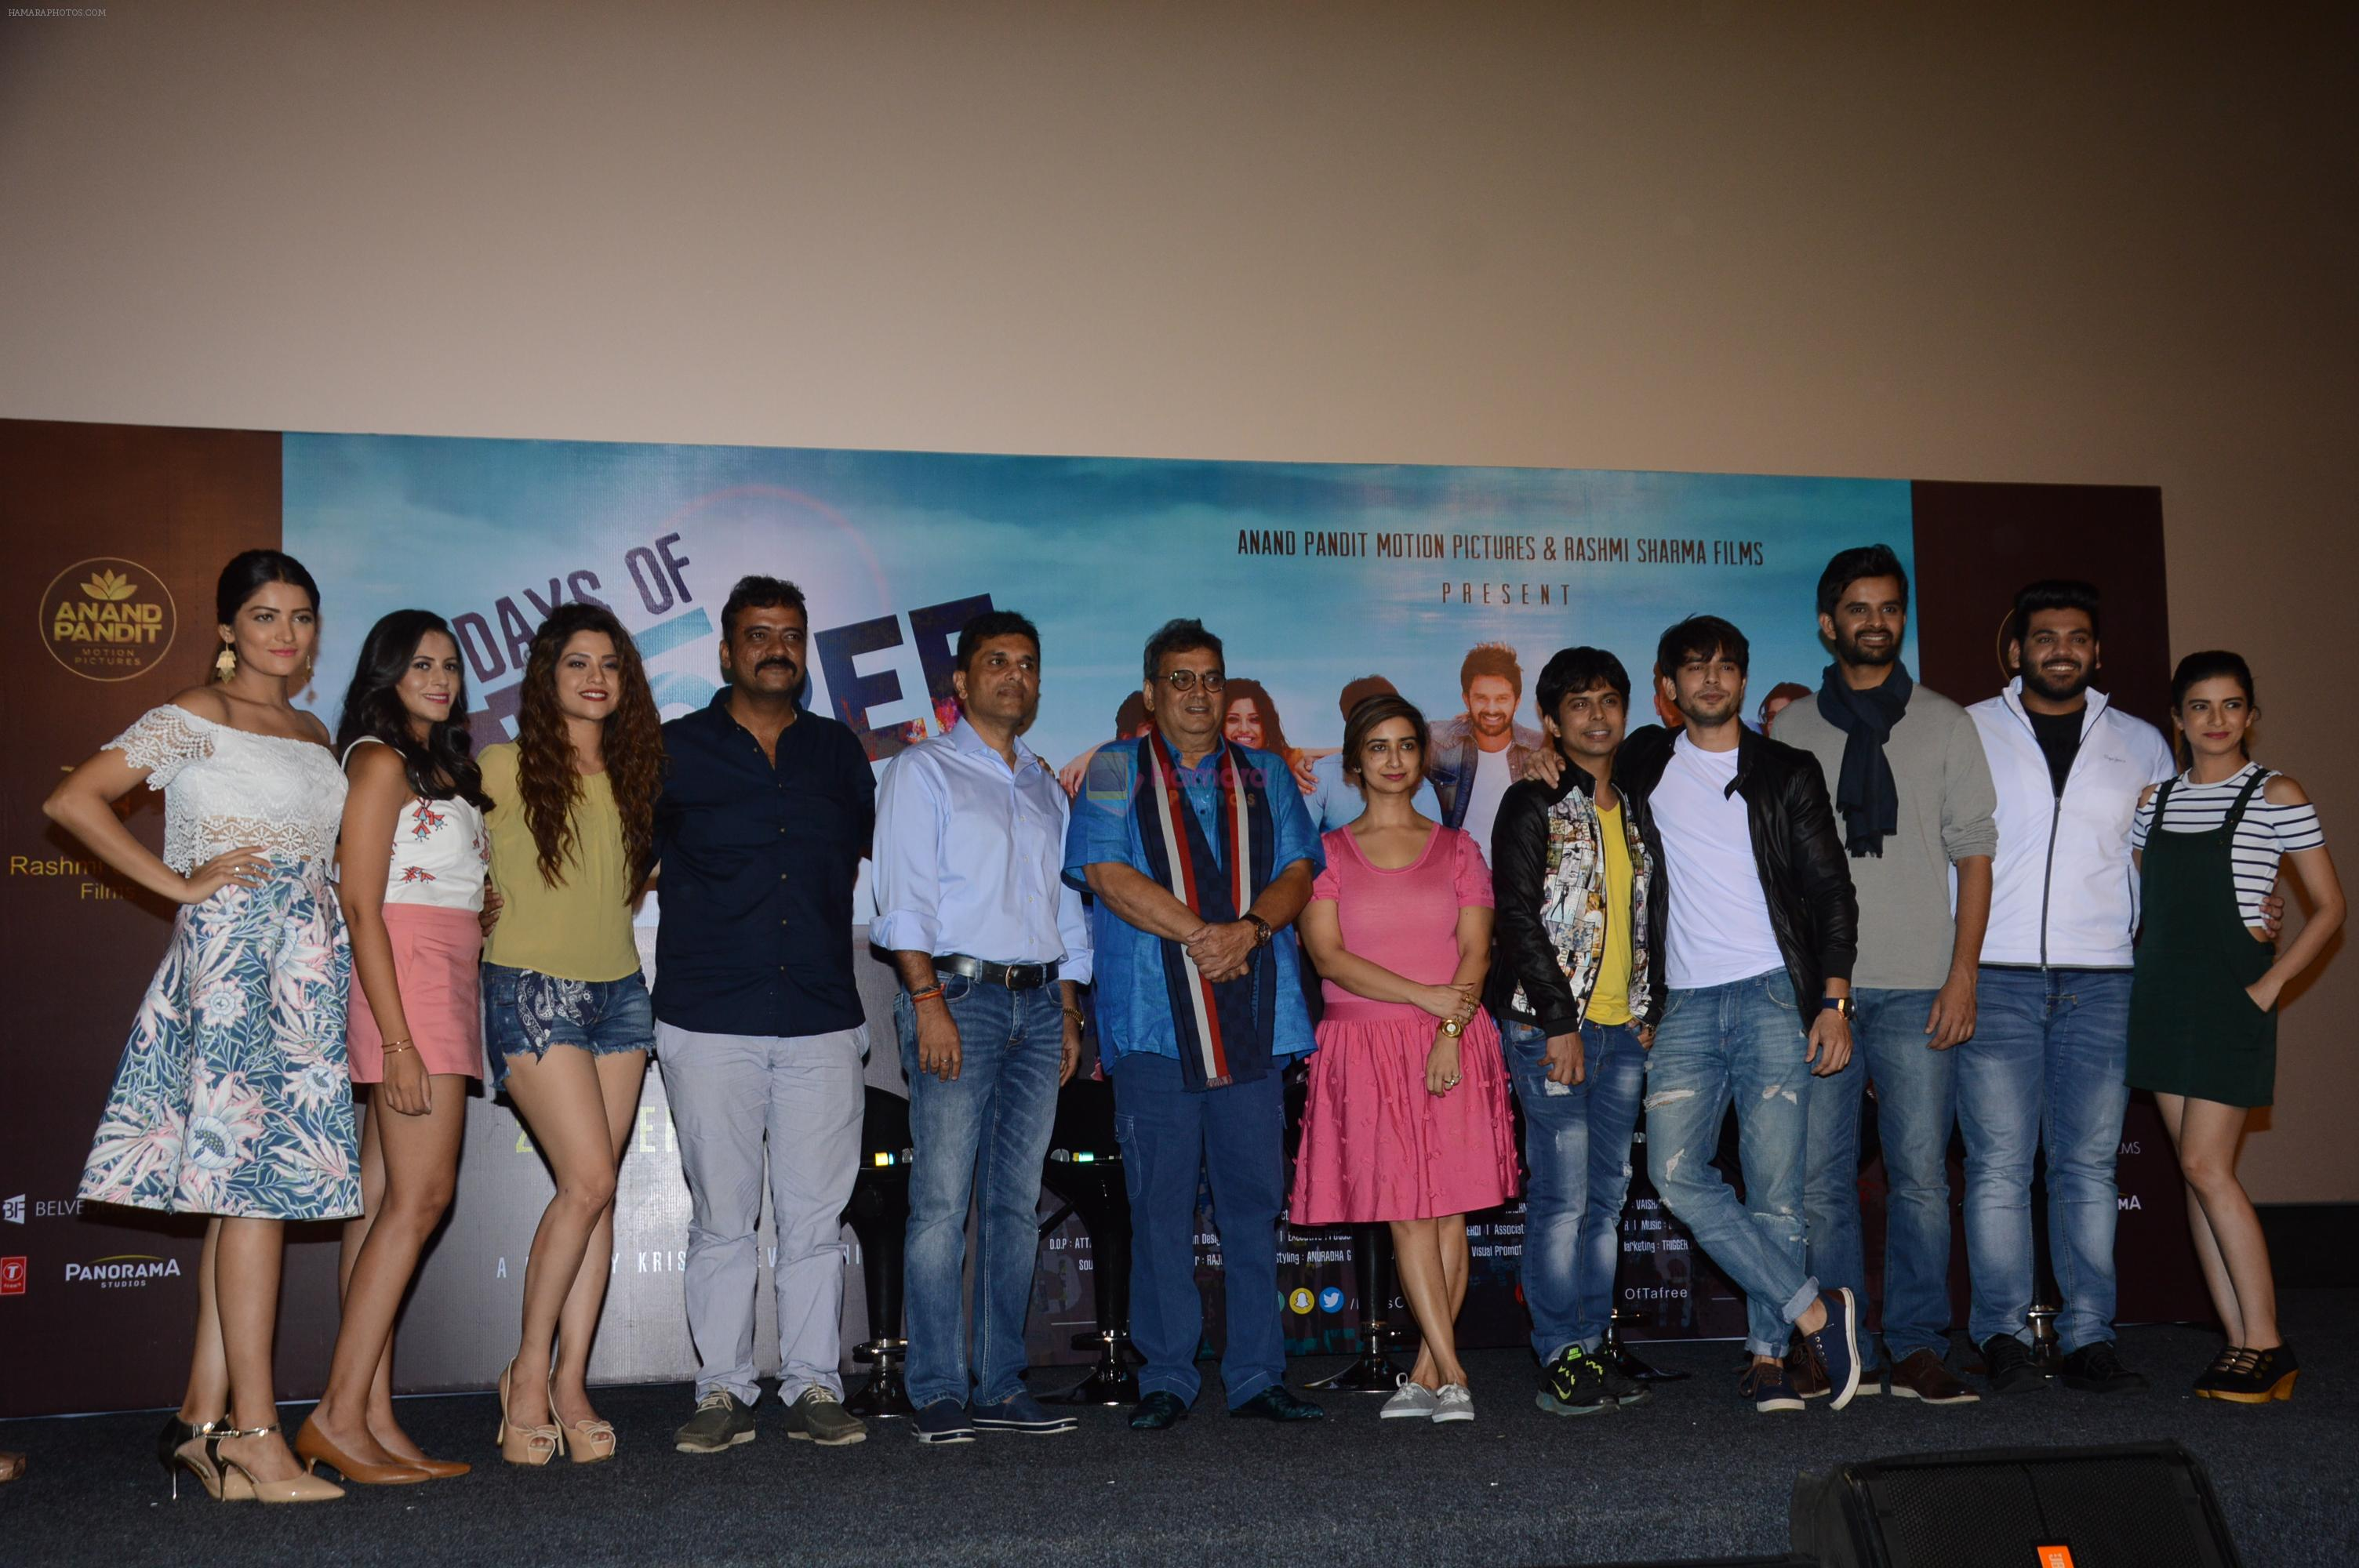 Director Krishnadev Yagnik, Producer Anand Pandit and Rashmi Shama, Cheif Guest Subhash Ghai launched The Trailer of Days of Tafree